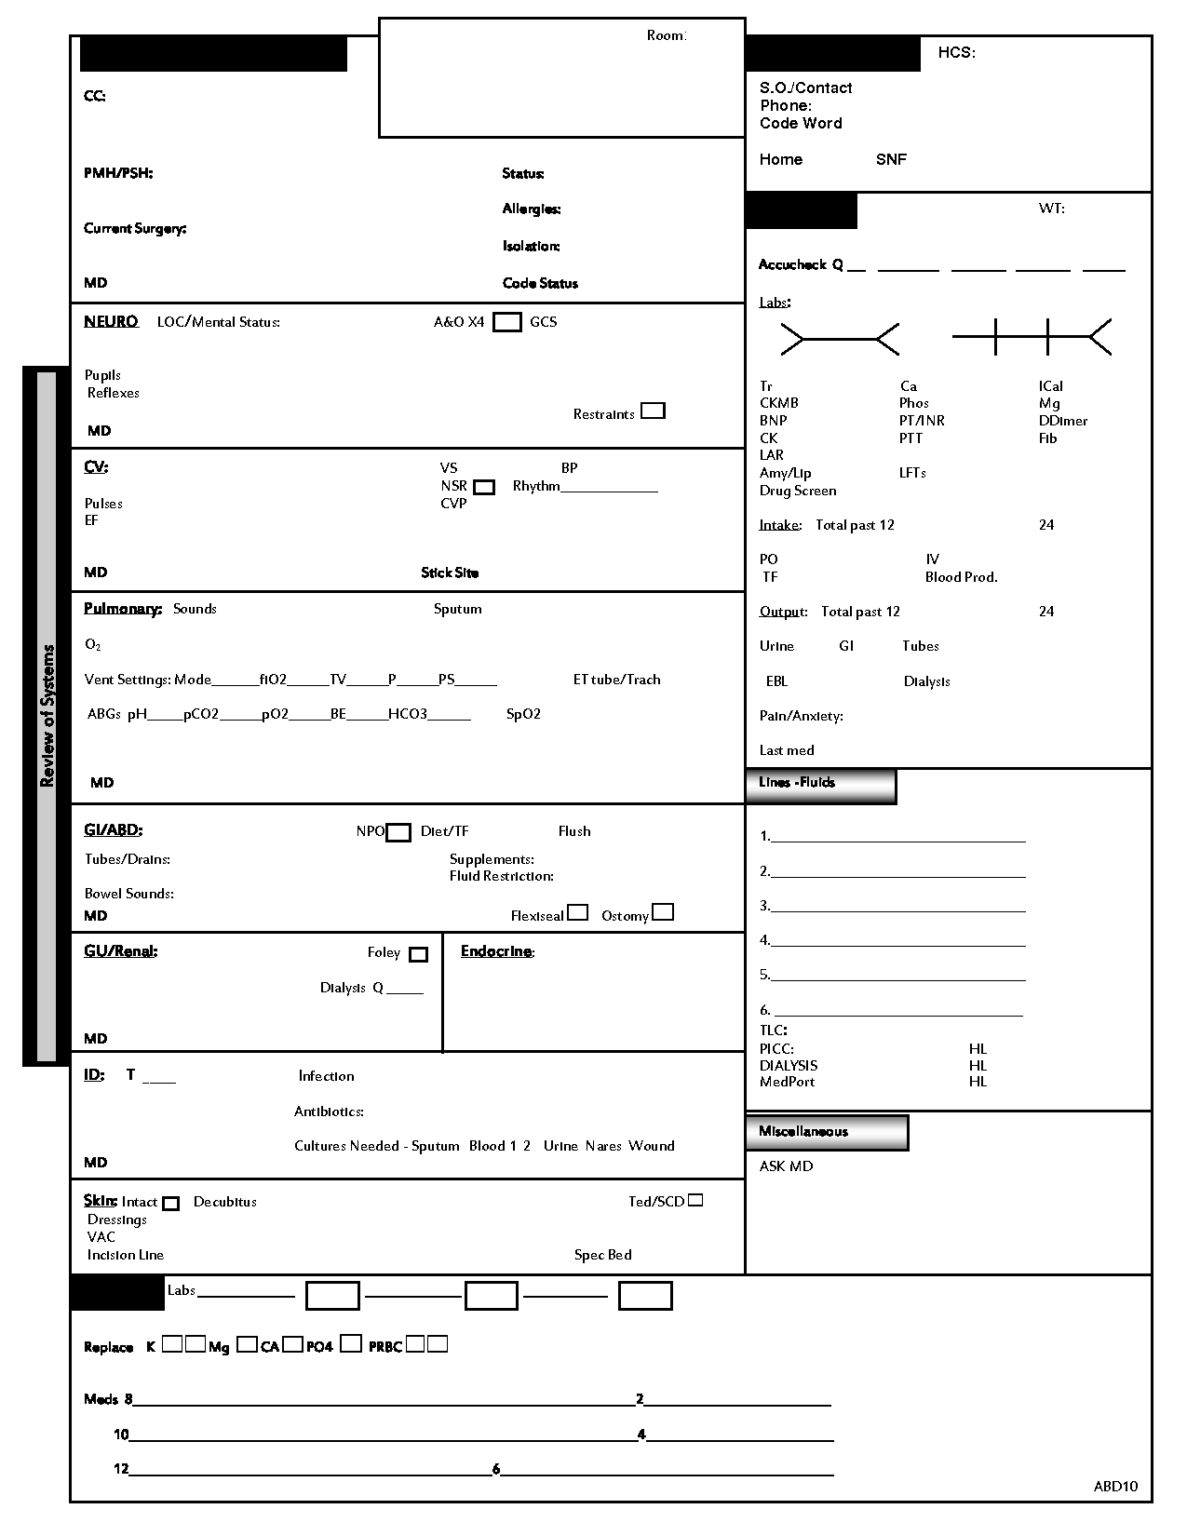 Icu Nurse Report Sheet Template In With Images